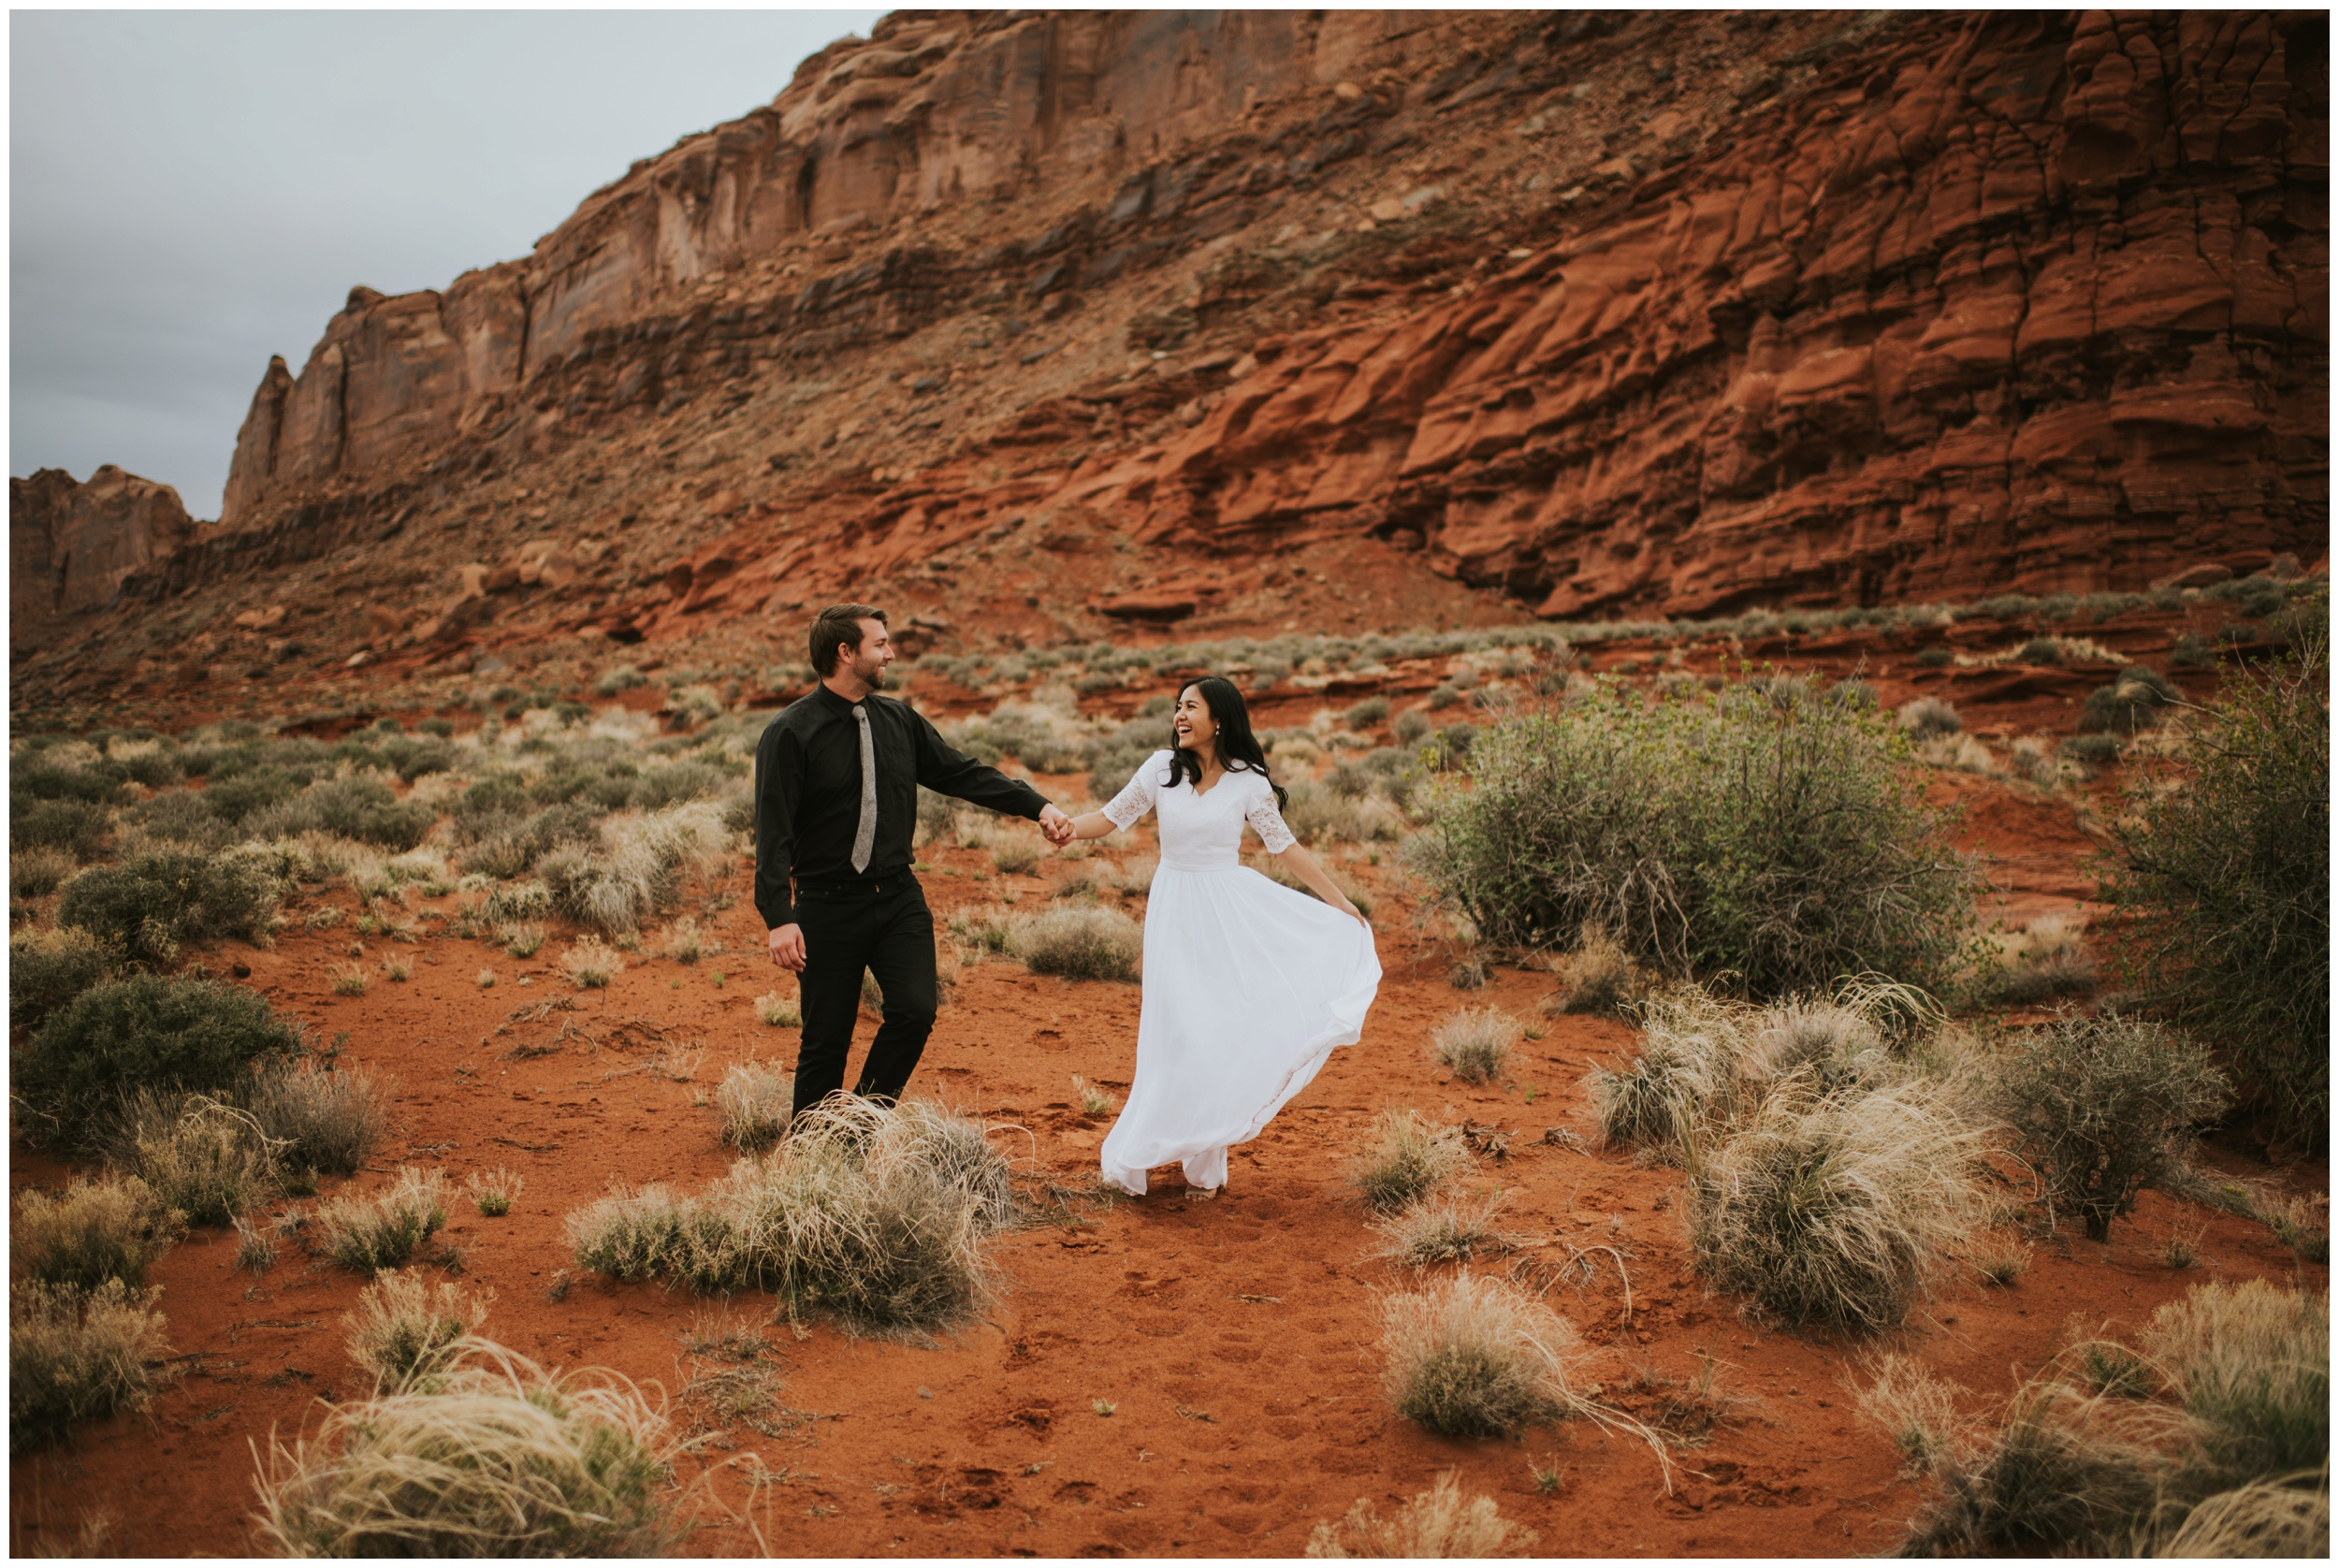 Couple dancing and playing in Moab canyon  | Moab Utah, Photographer www.riversandroadsphotography.com